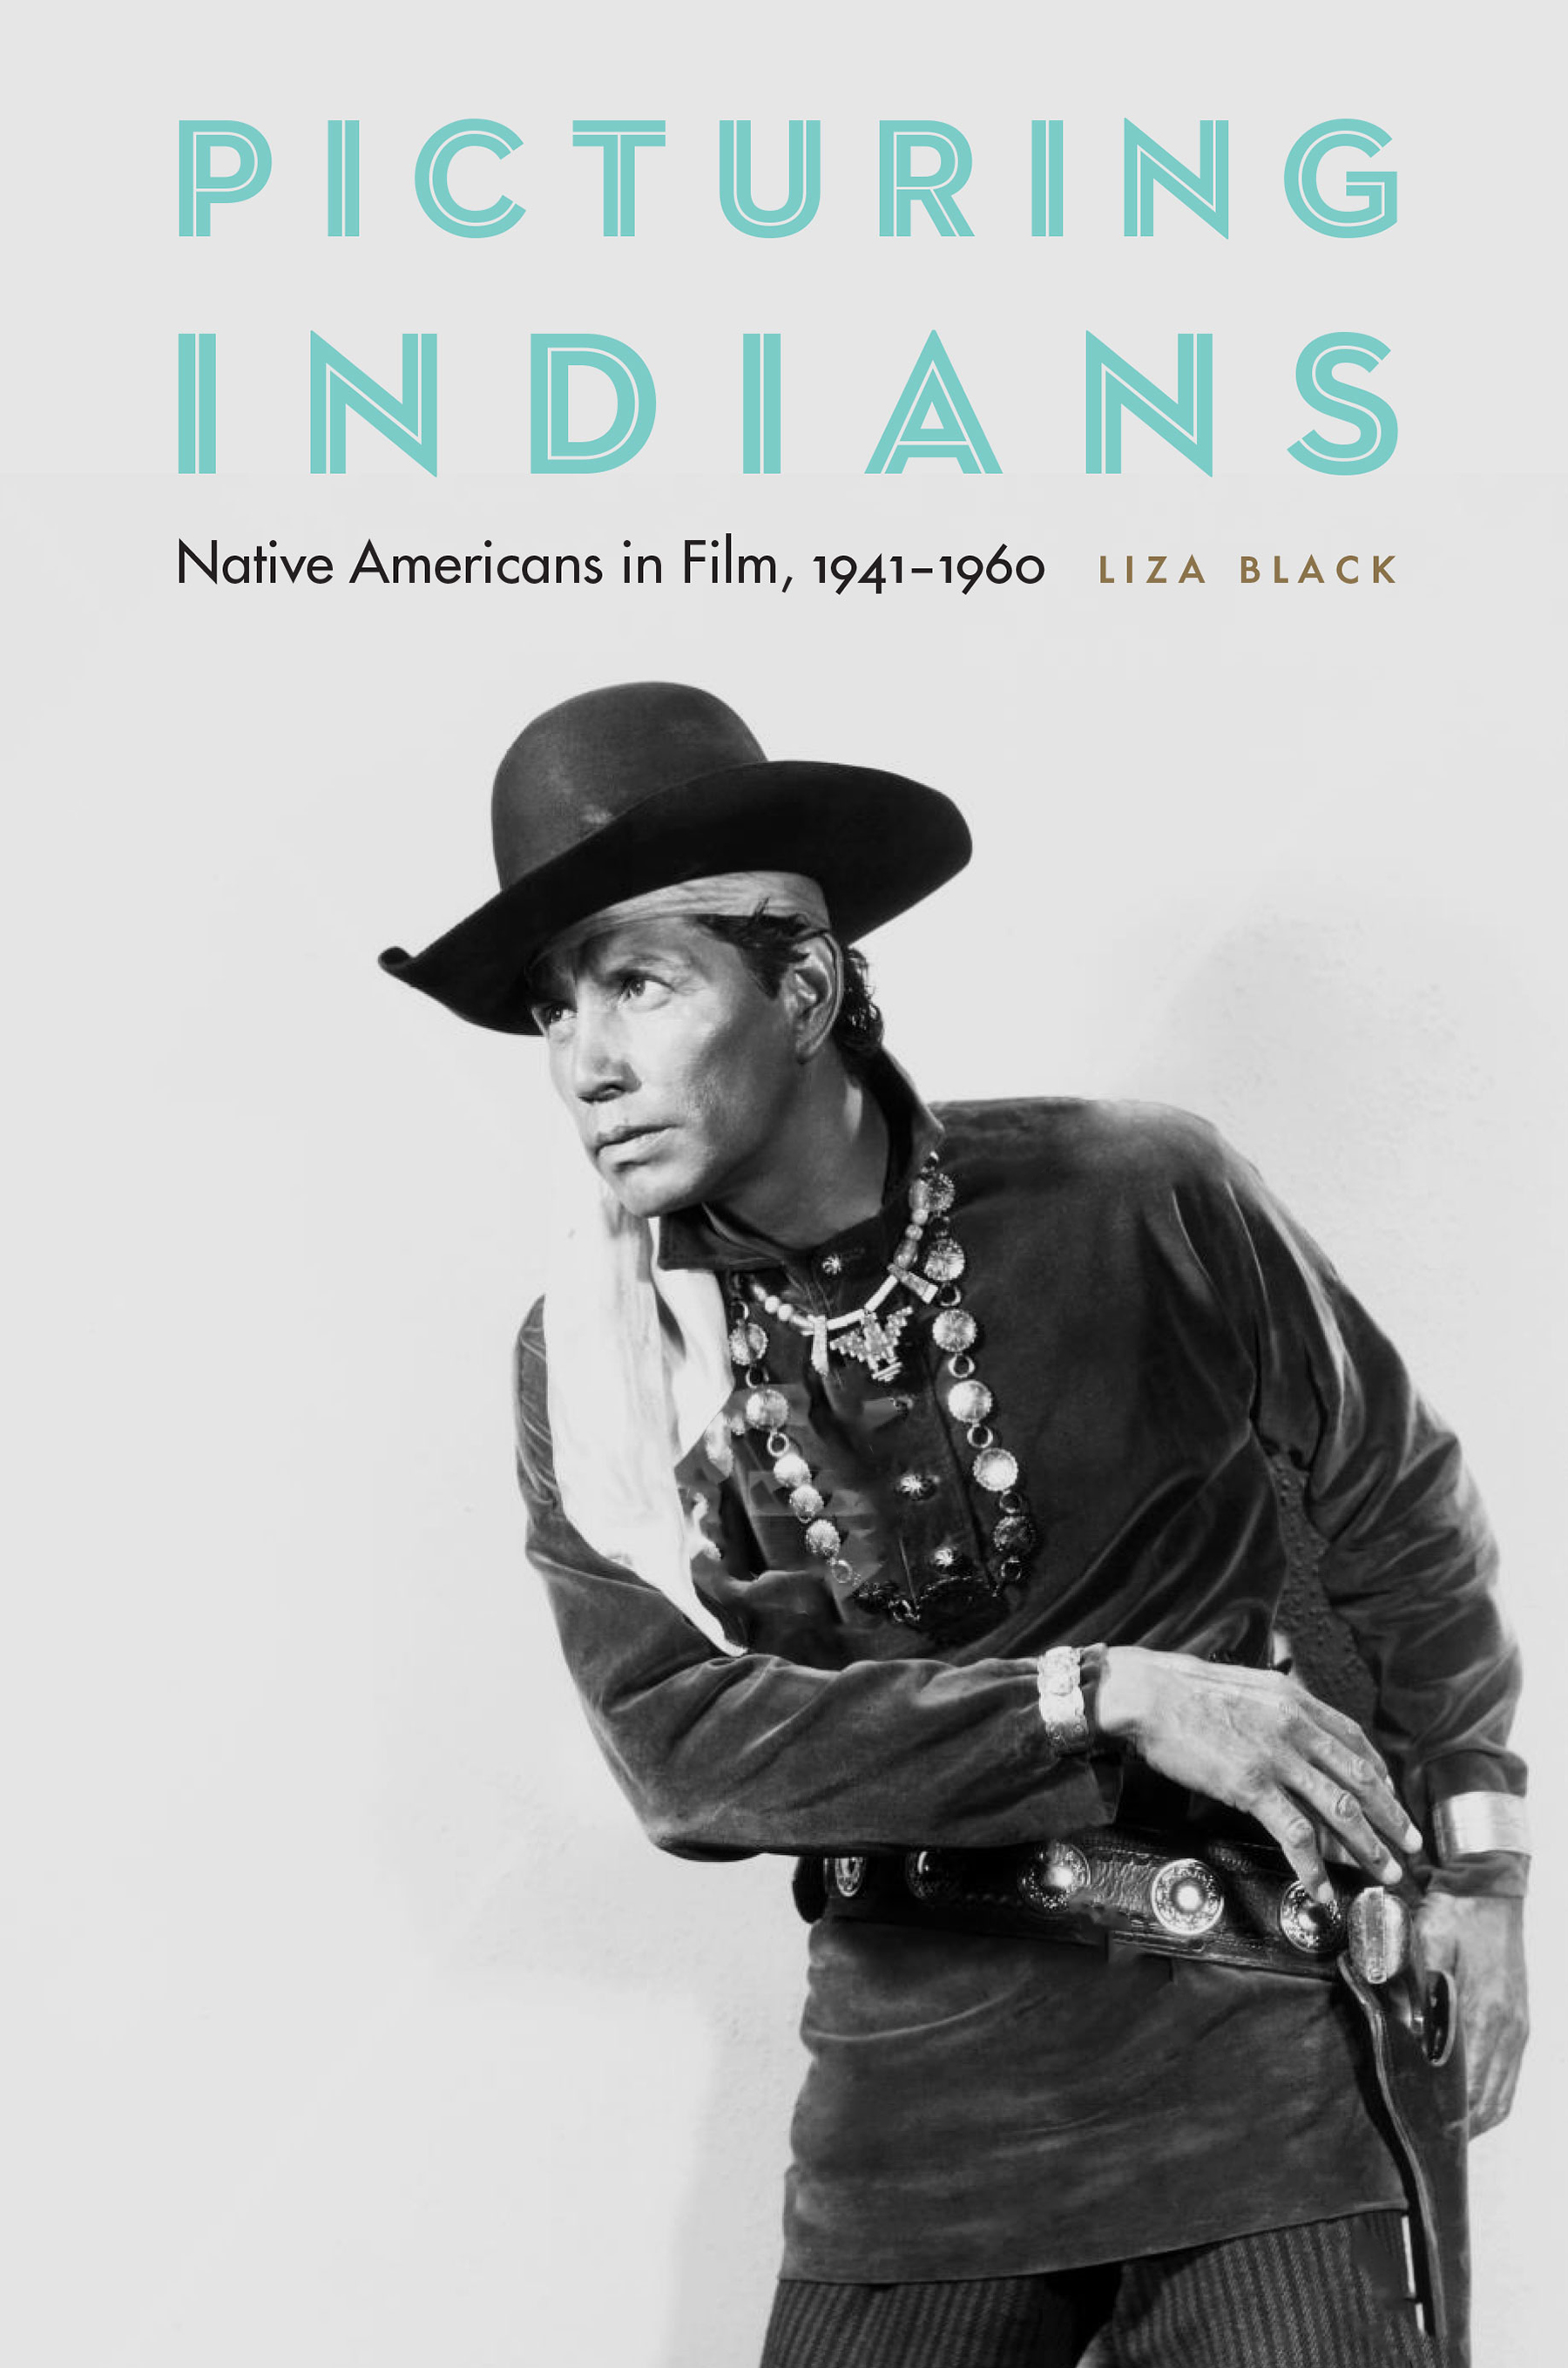 Picturing Indians: Native Americans in Film, 1941-1960